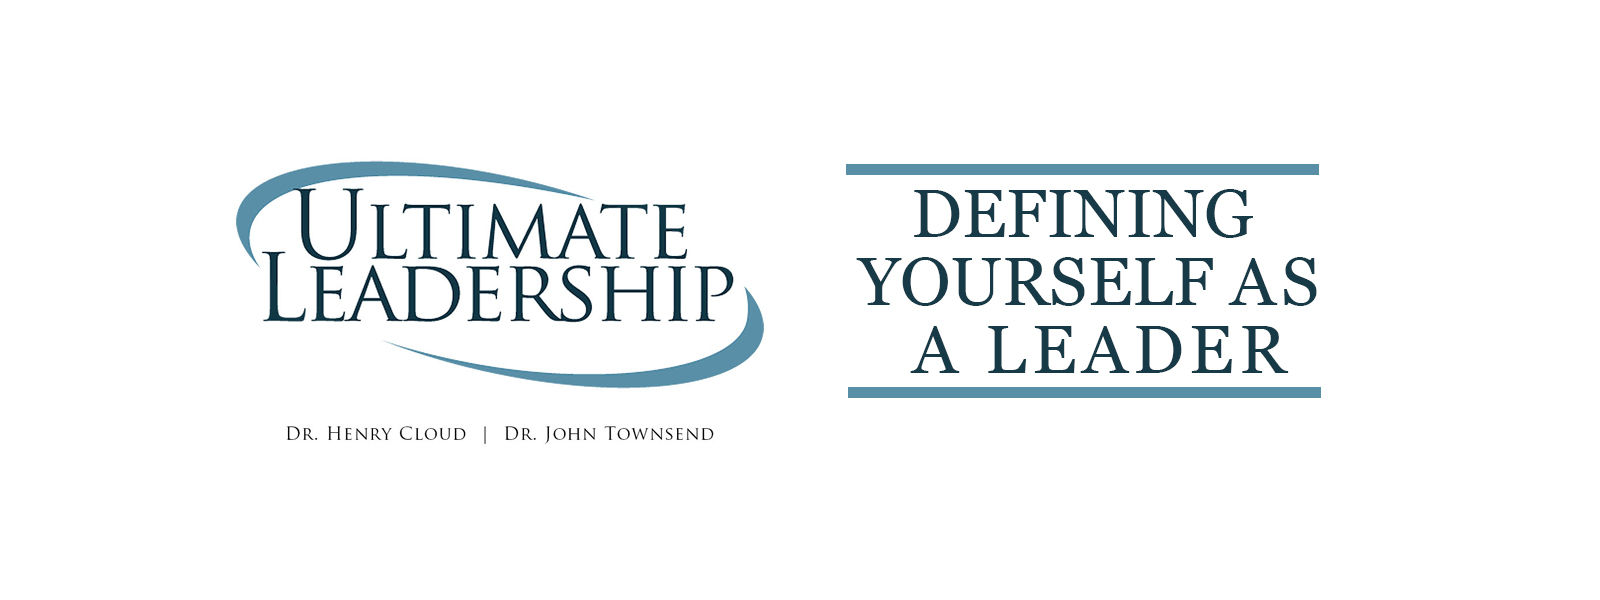 Defining Yourself as a Leader